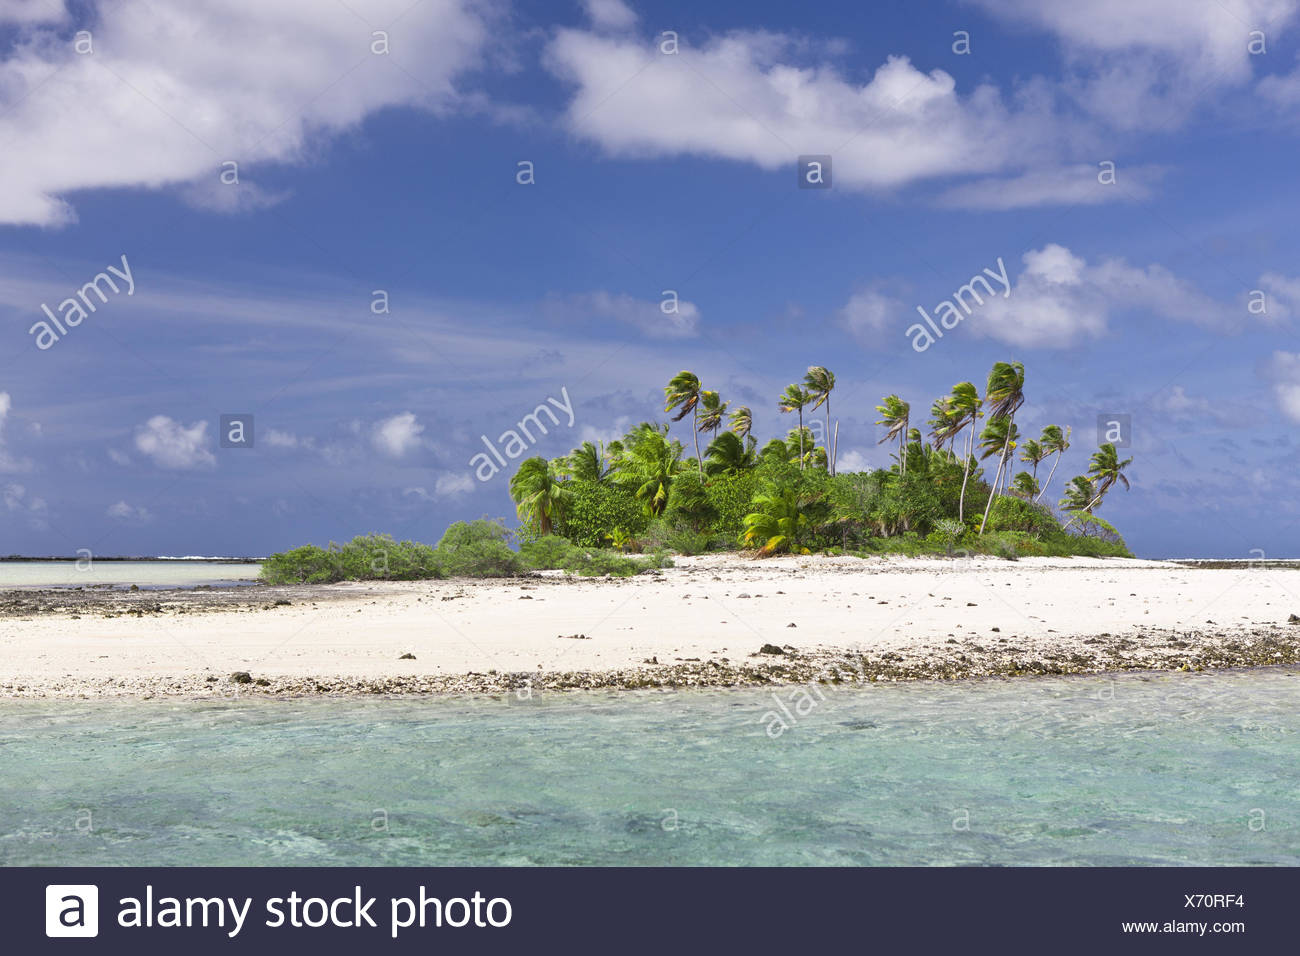 The Pacific Ocean, French Polynesia, Tuamotu archipelago, atoll Tikehau, scenery, island, ocean, archipelago, Volcanically, atoll, lagoon, beach, sandy beach, palm, level, vegetation, heaven, blue, clouds, windy, - Stock Image